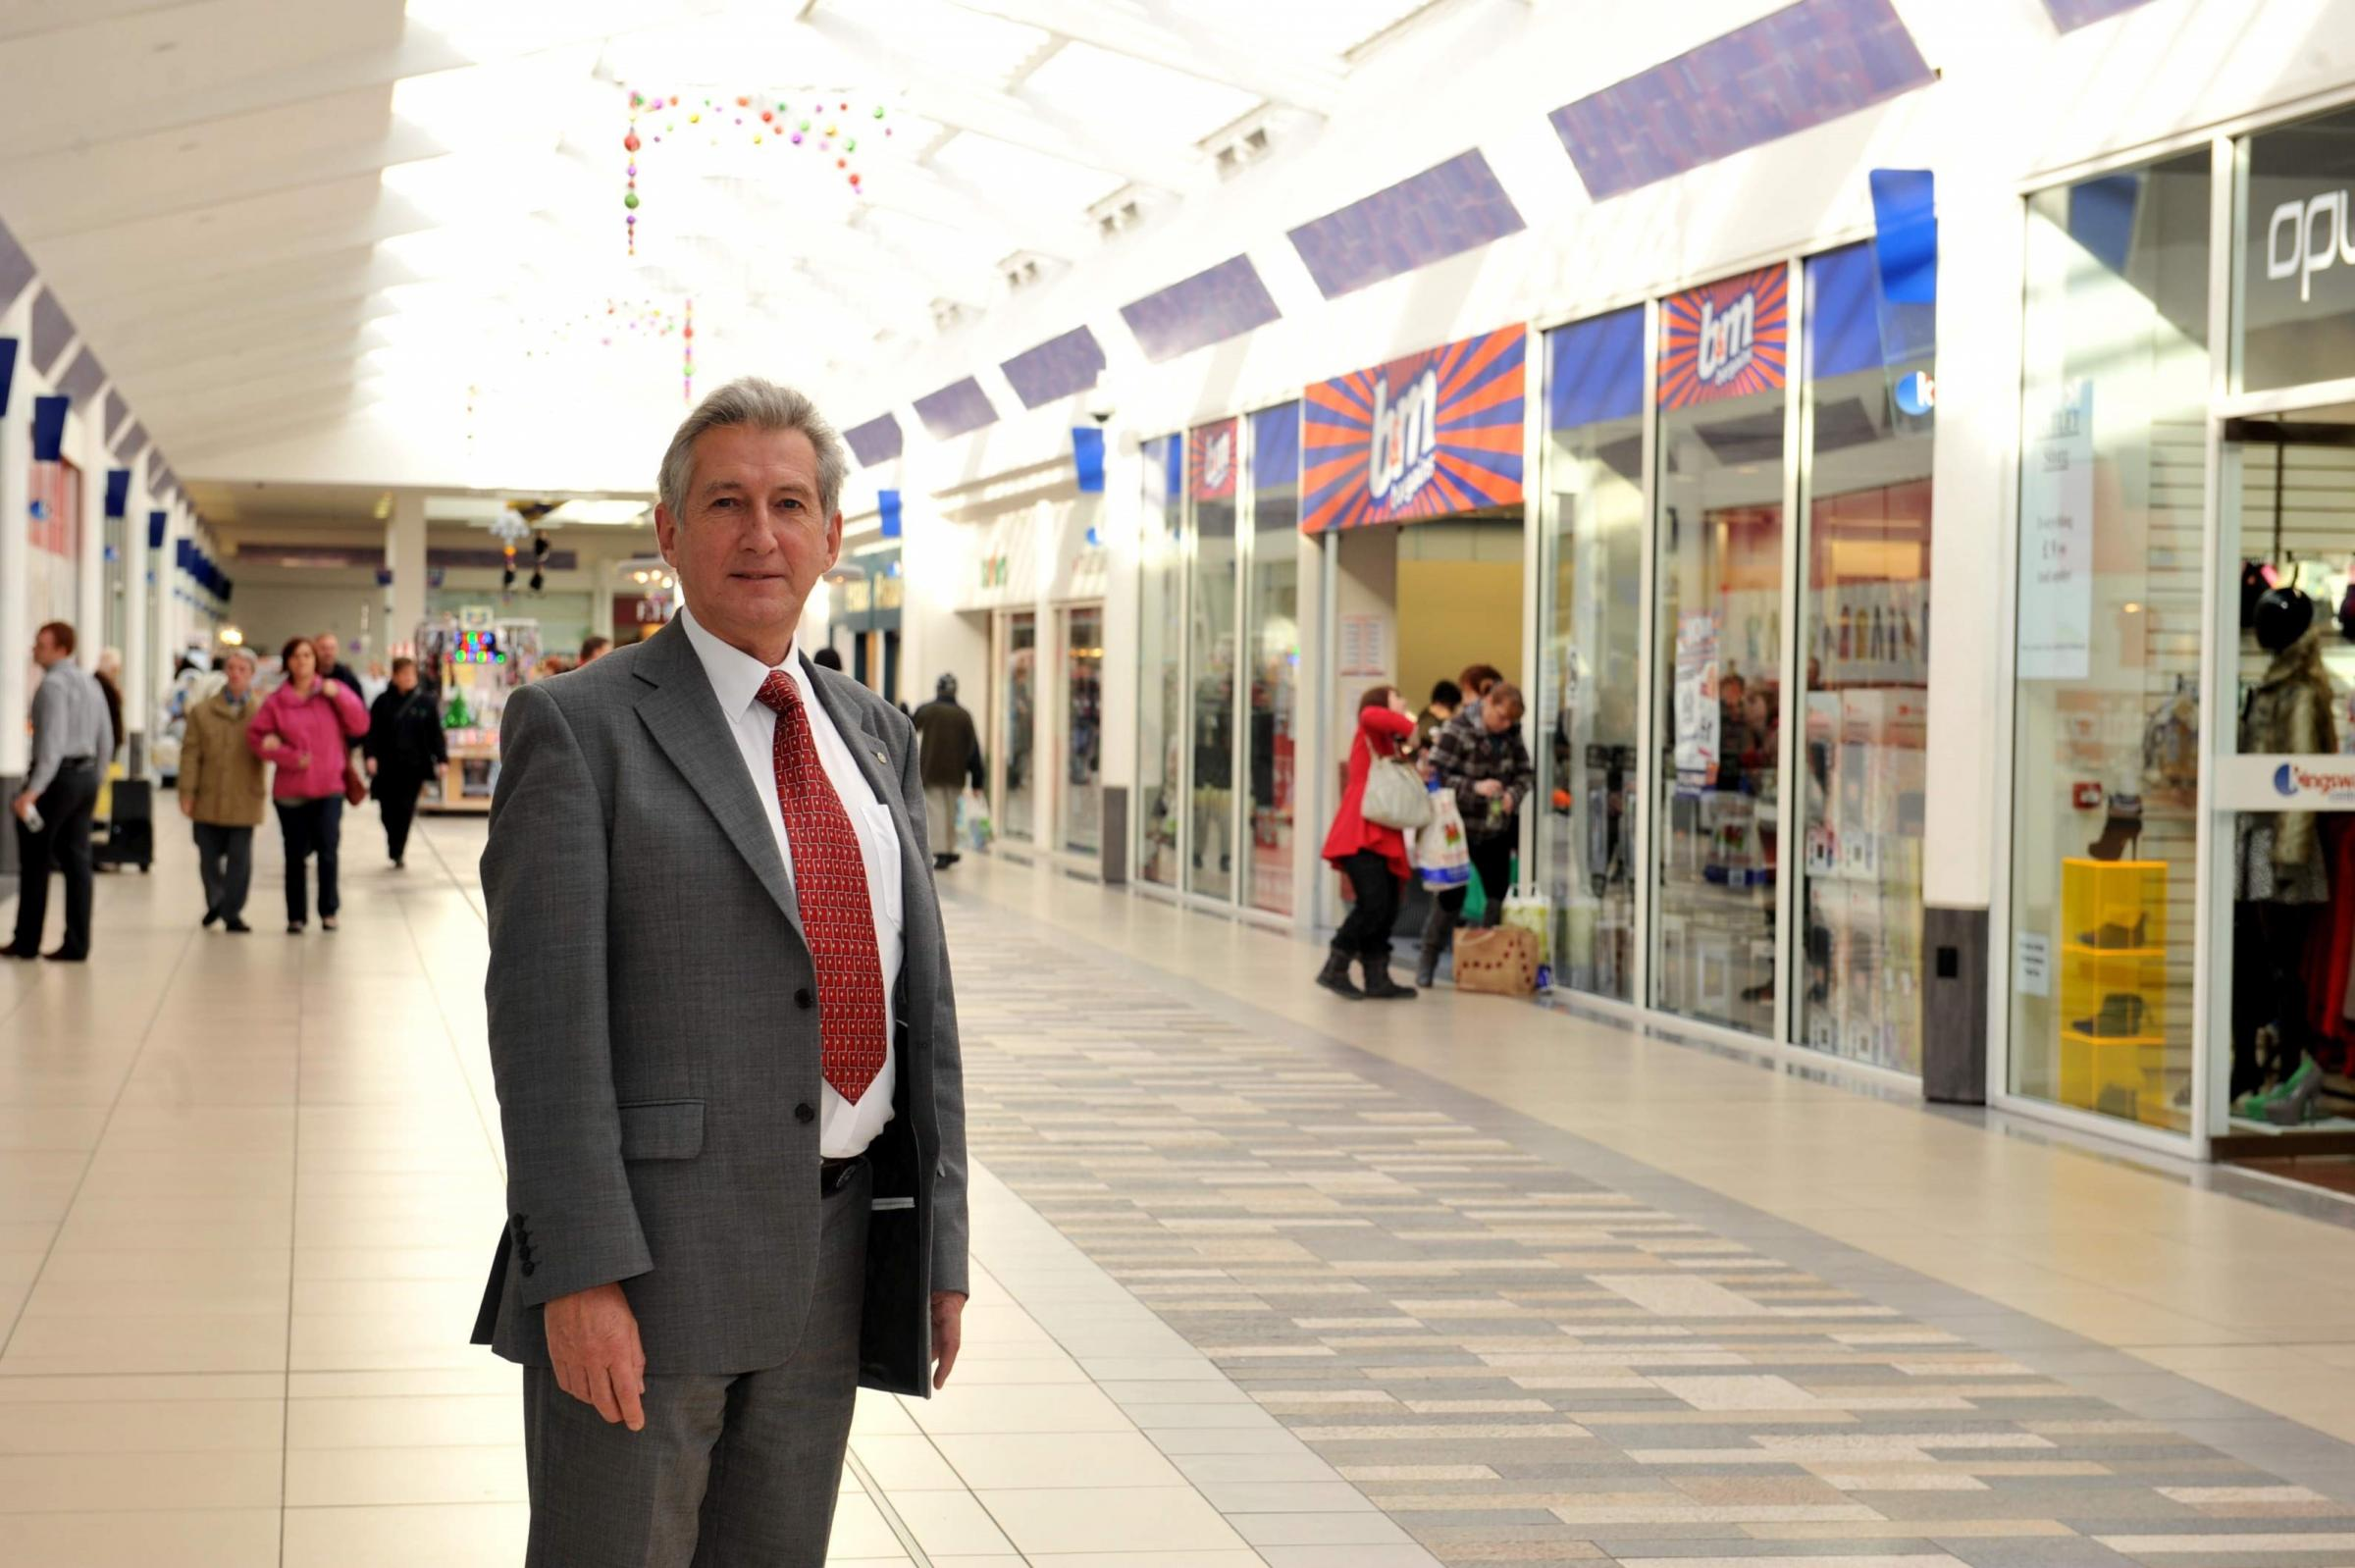 NEW OWNERS: Manager of the Kingsway Centre Michael Hine in the shopping complex